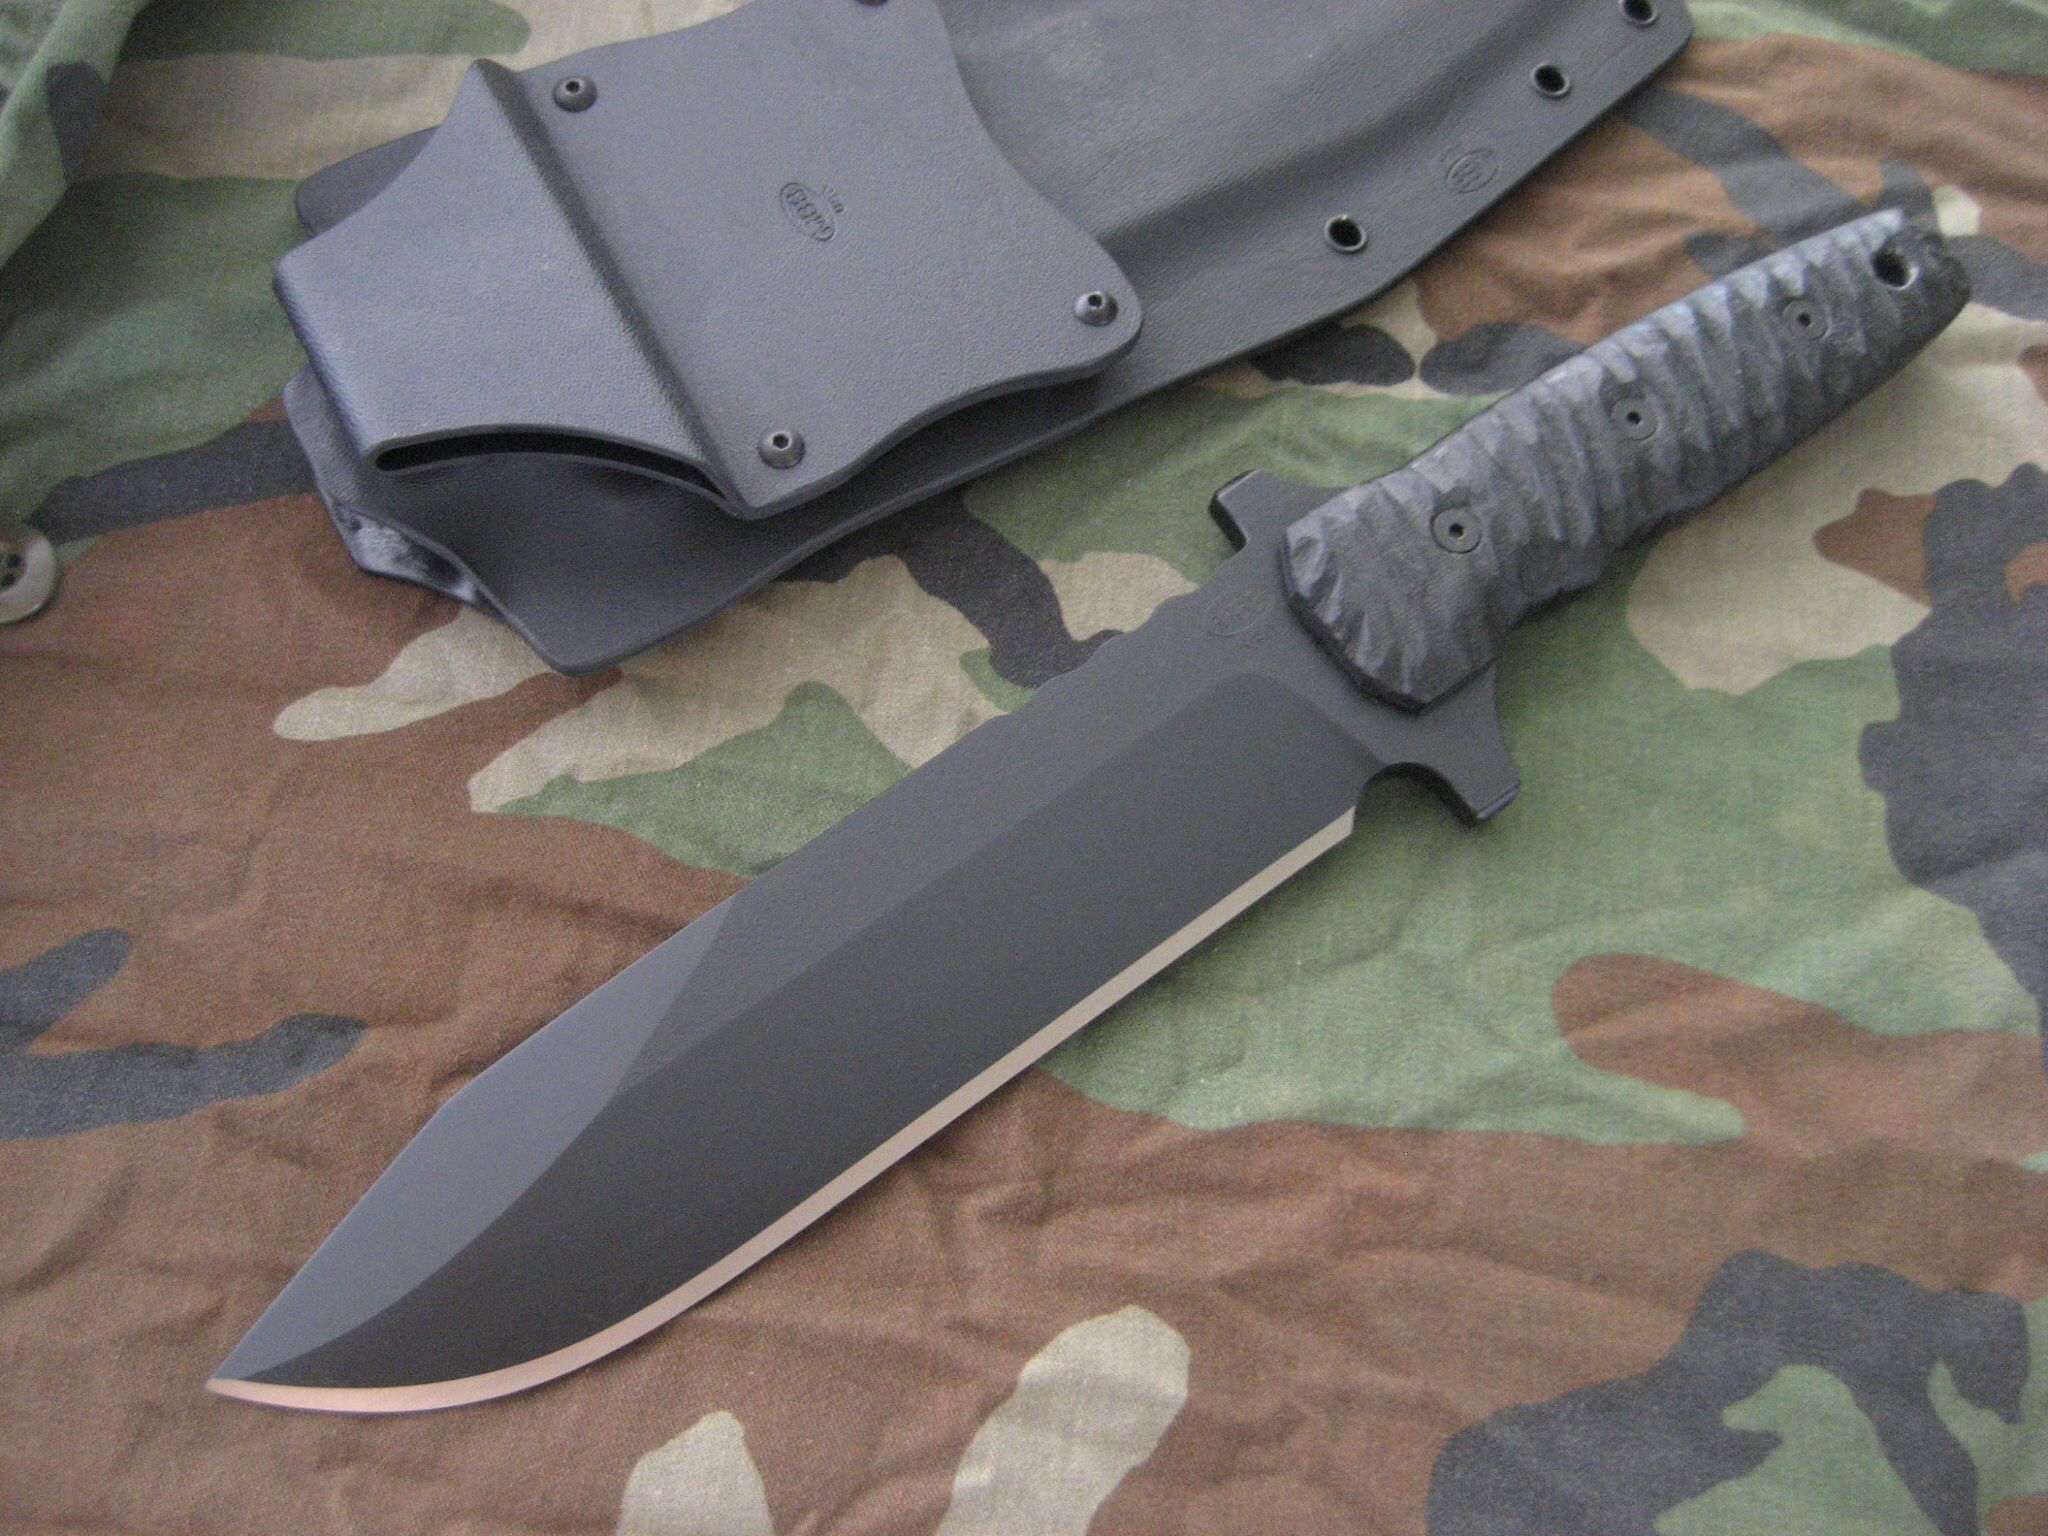 Cool Knife Pin By Brandon On Sharp Stuff Blade Military Knives